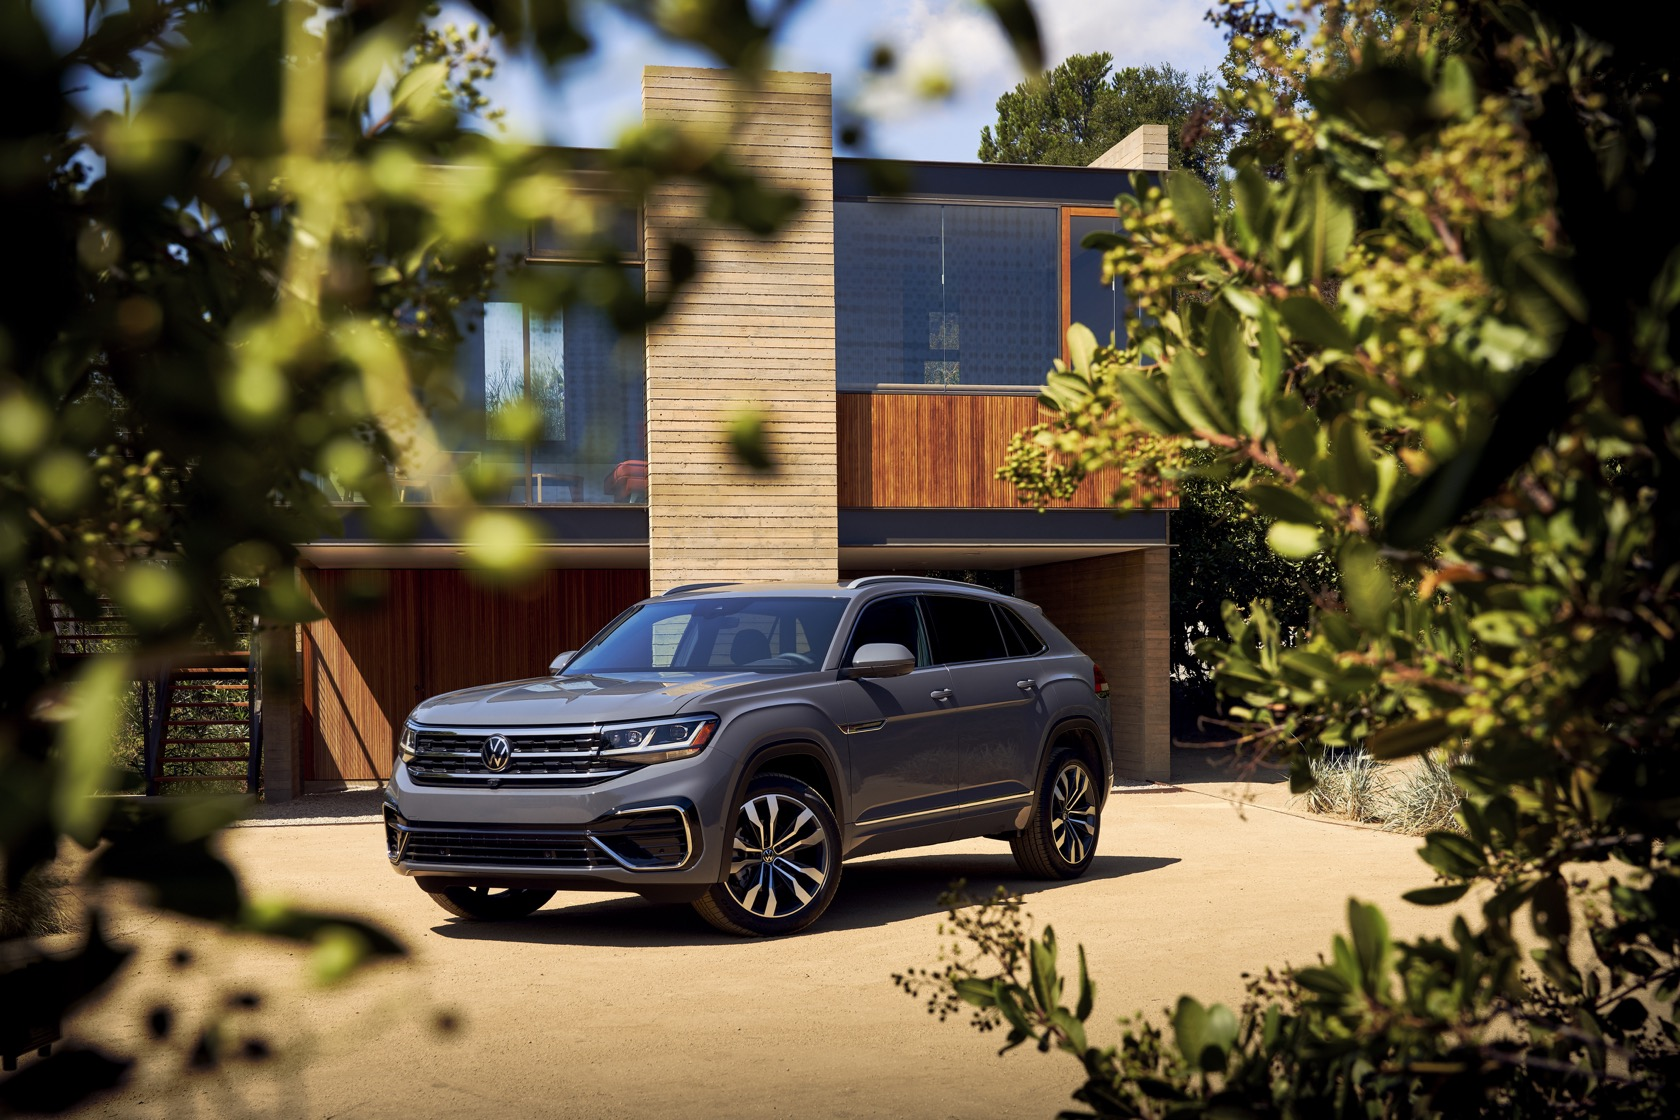 2020 Vw Atlas Cross Sport Pricing Confirmed Two Row Suv